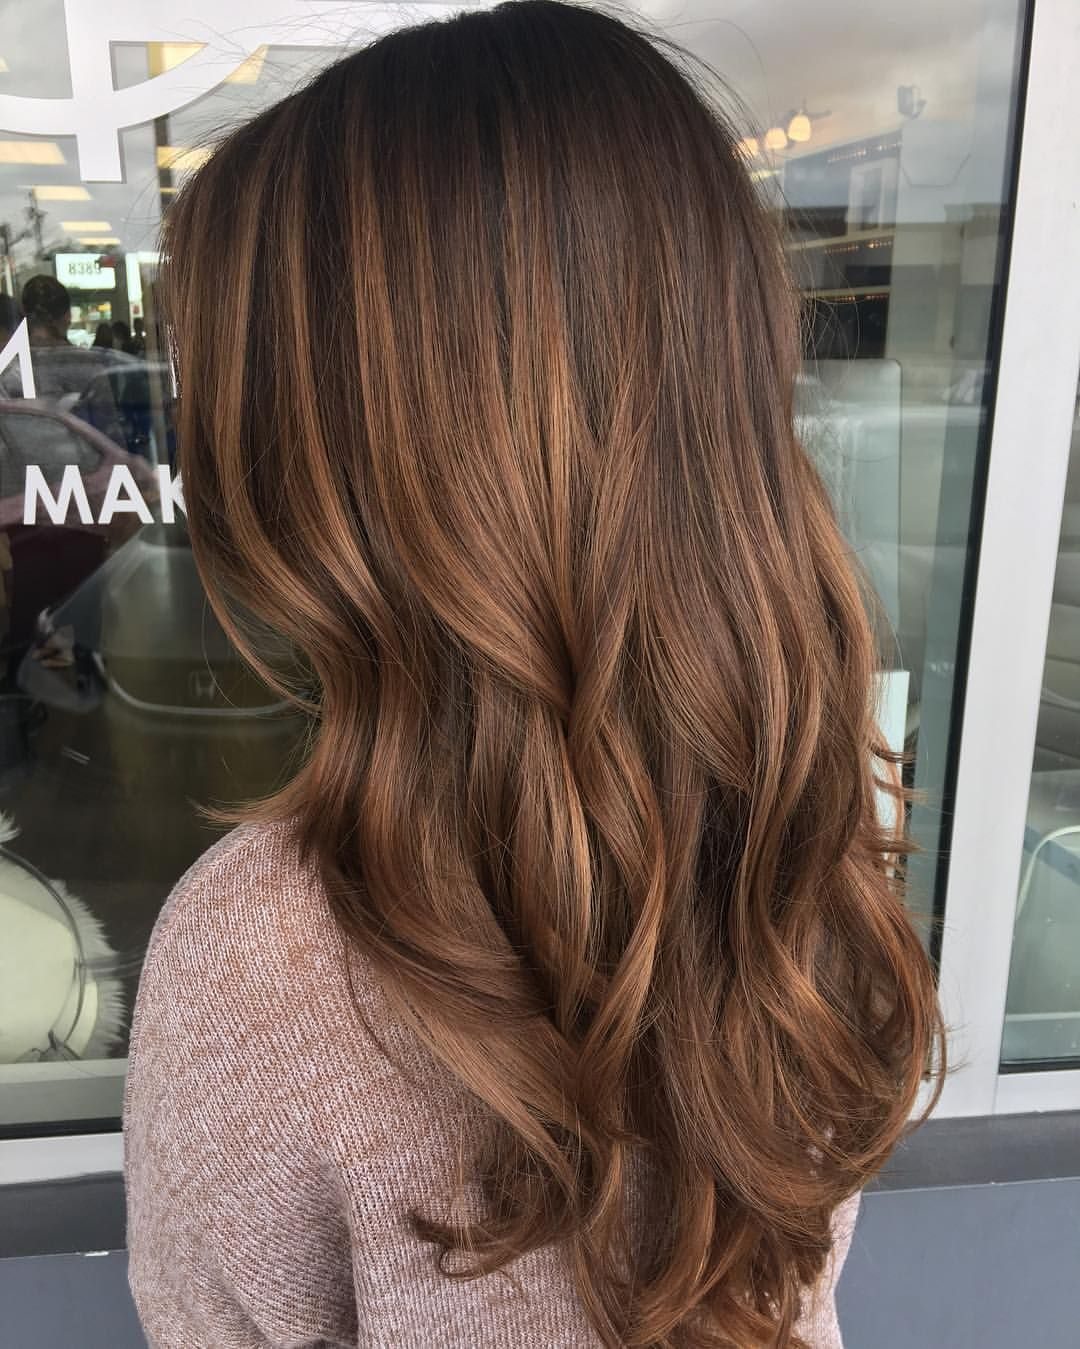 Pin by emma on hair pinterest instagram hair coloring and hair